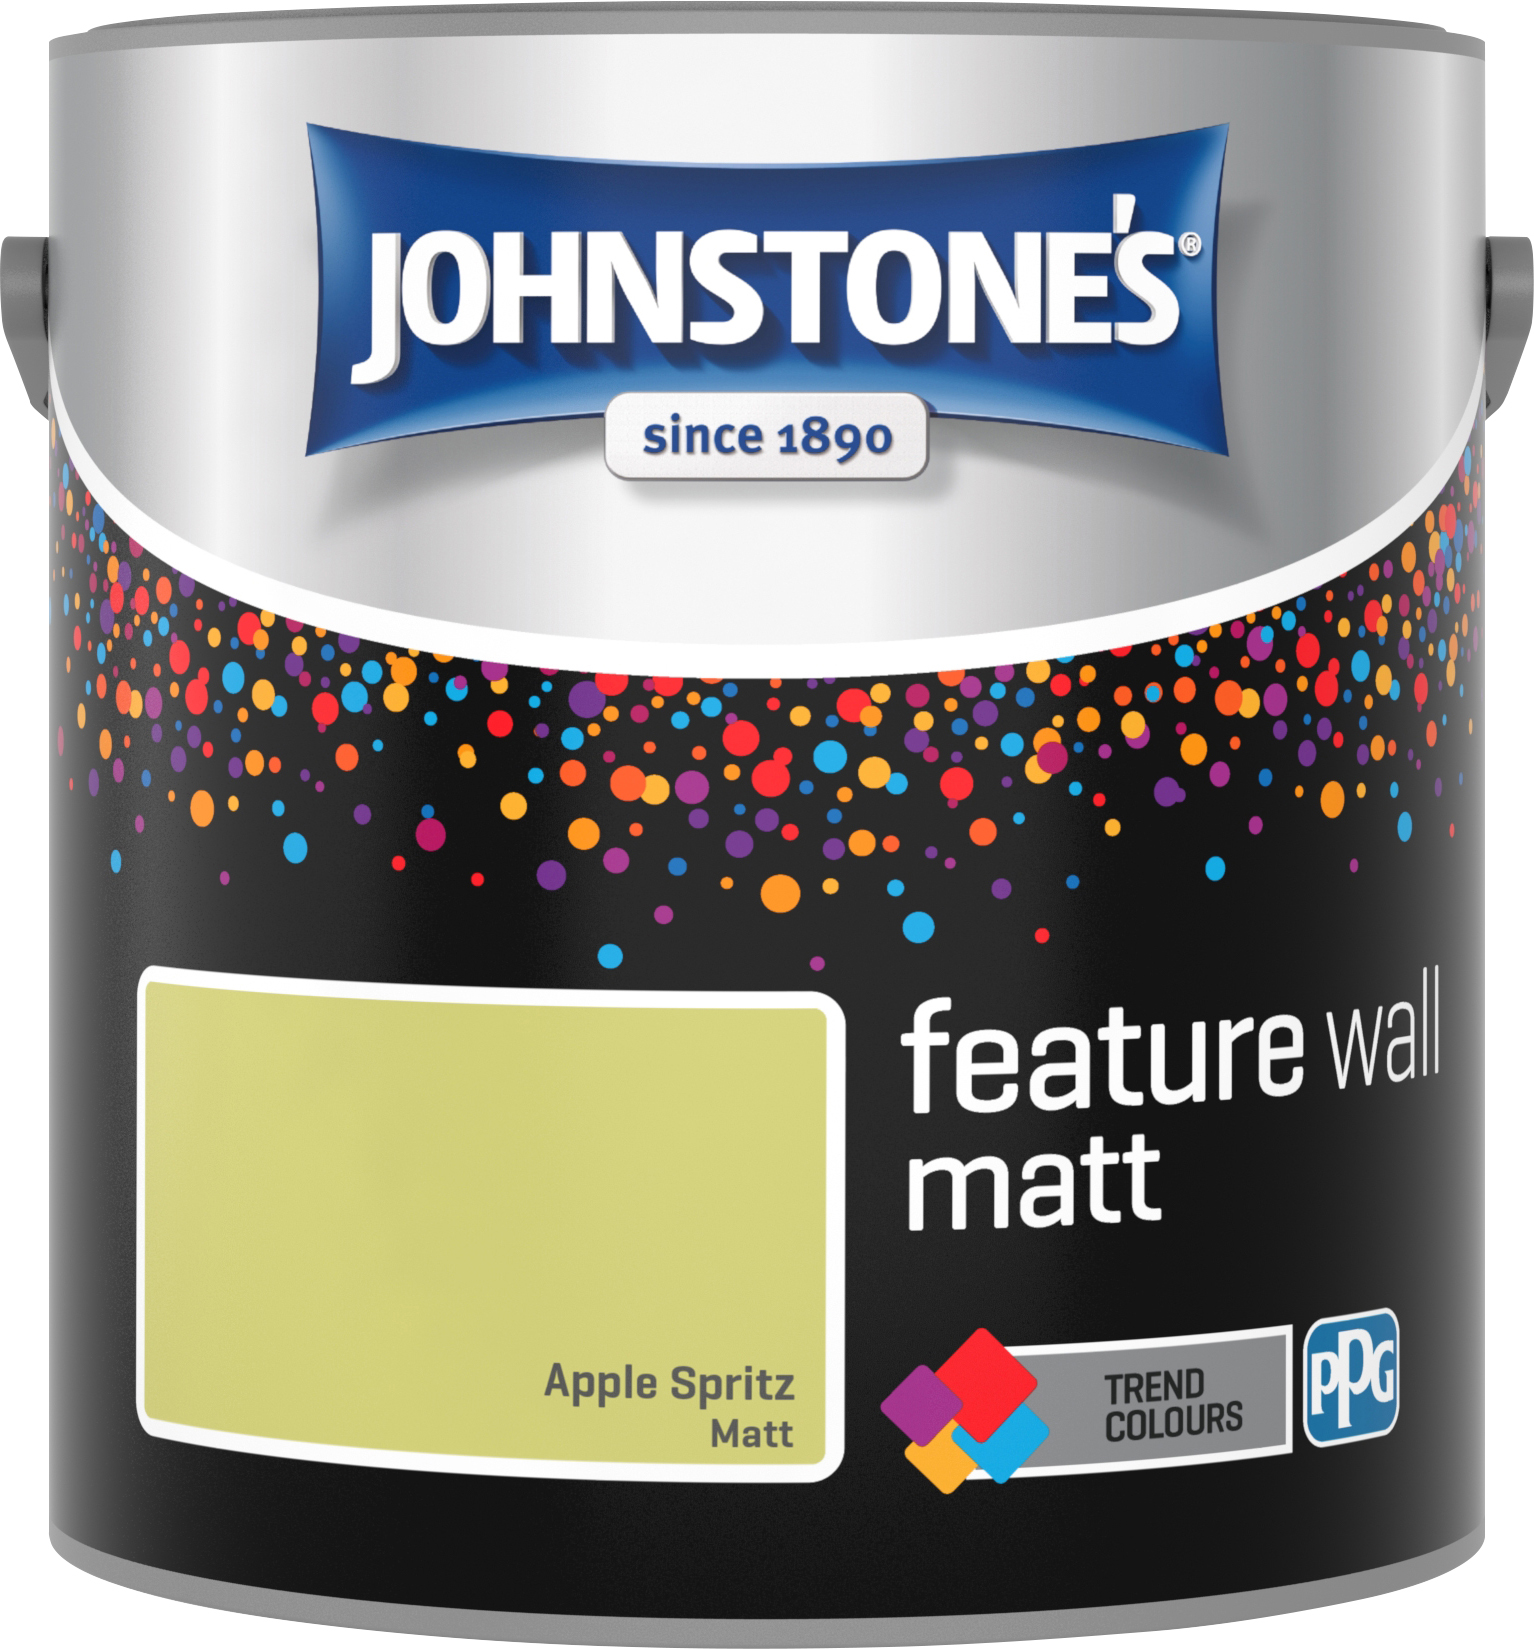 Johnstone's 2.5 Litre Feature Wall Matt Emulsion Paint - Apple Spritz